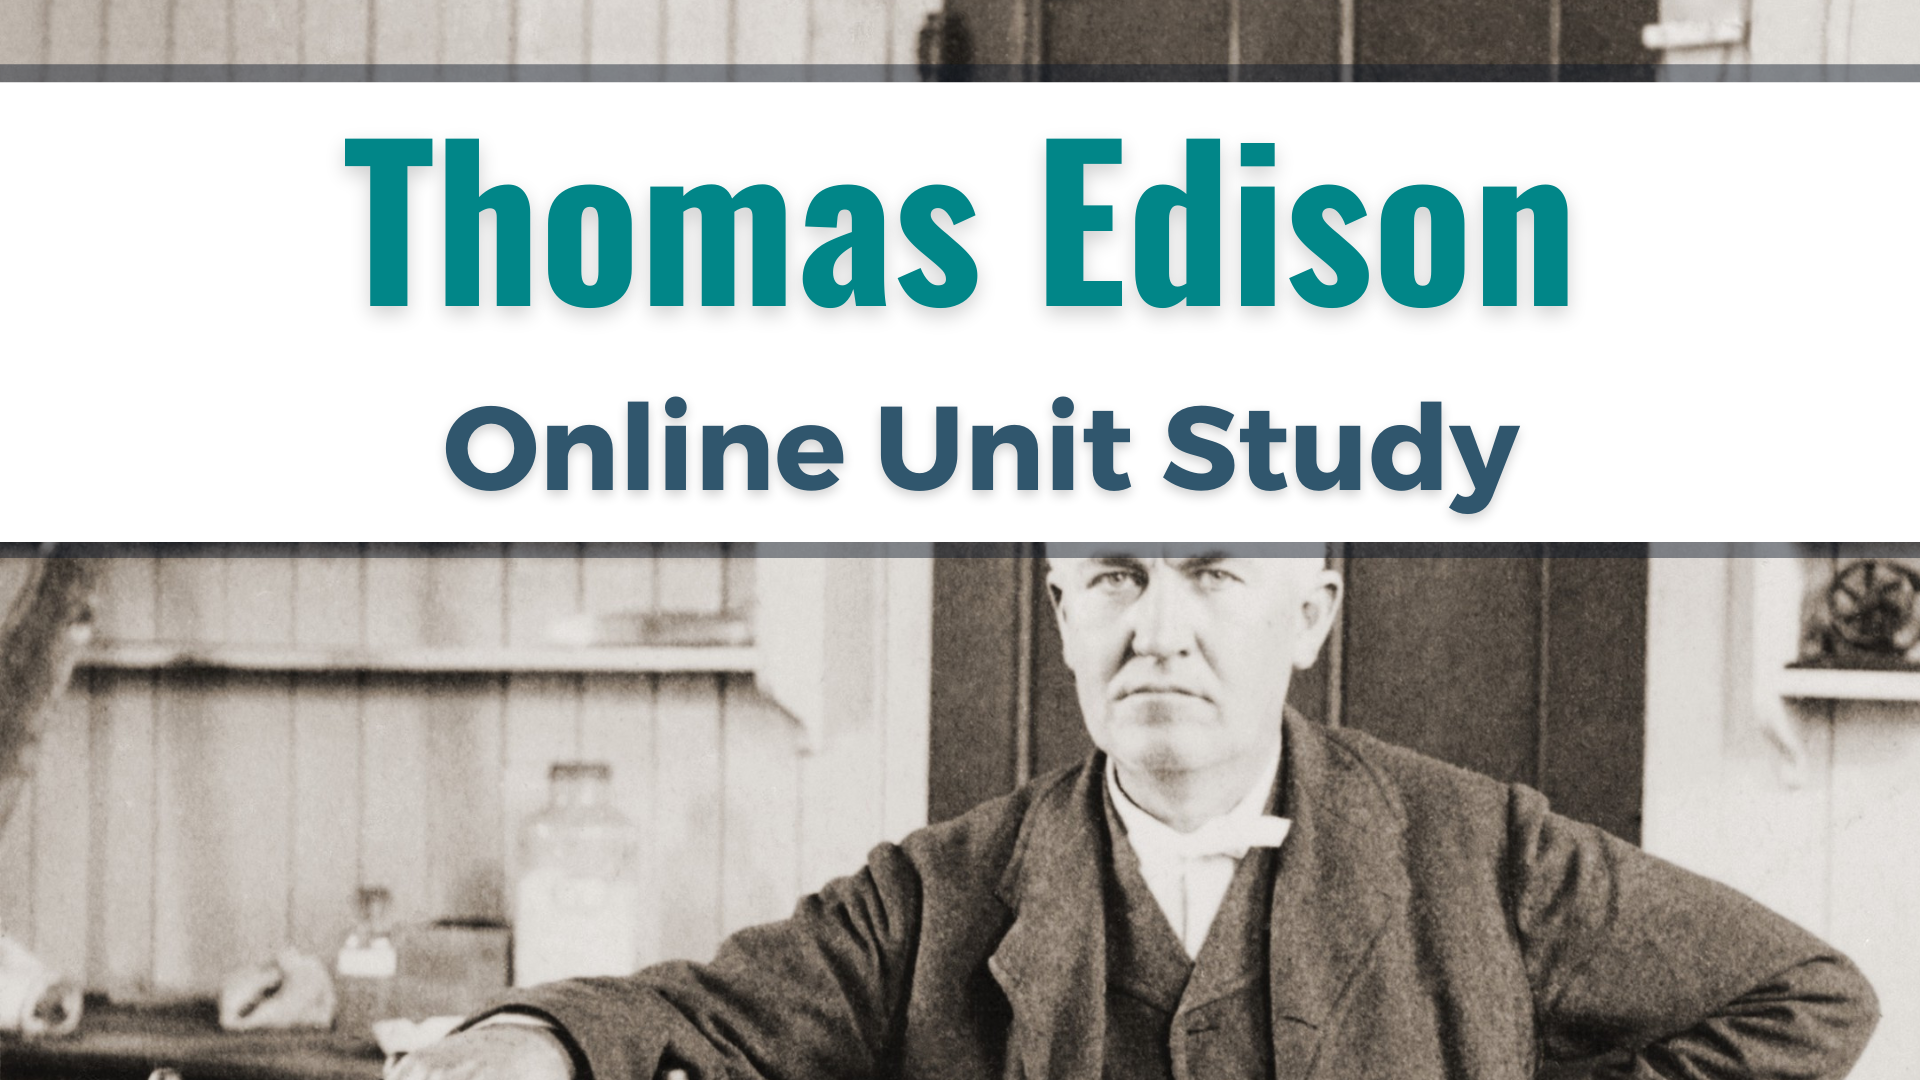 Thomas Edison Unit Study. This homeschool curriculum integrates multiple subjects for multiple ages of students. Access websites and videos and complete digital projects. With Online Unit Studies' easy-to-use E-course format, no additional books and print resources are needed. Just gather supplies for hands-on projects and register for online tools.